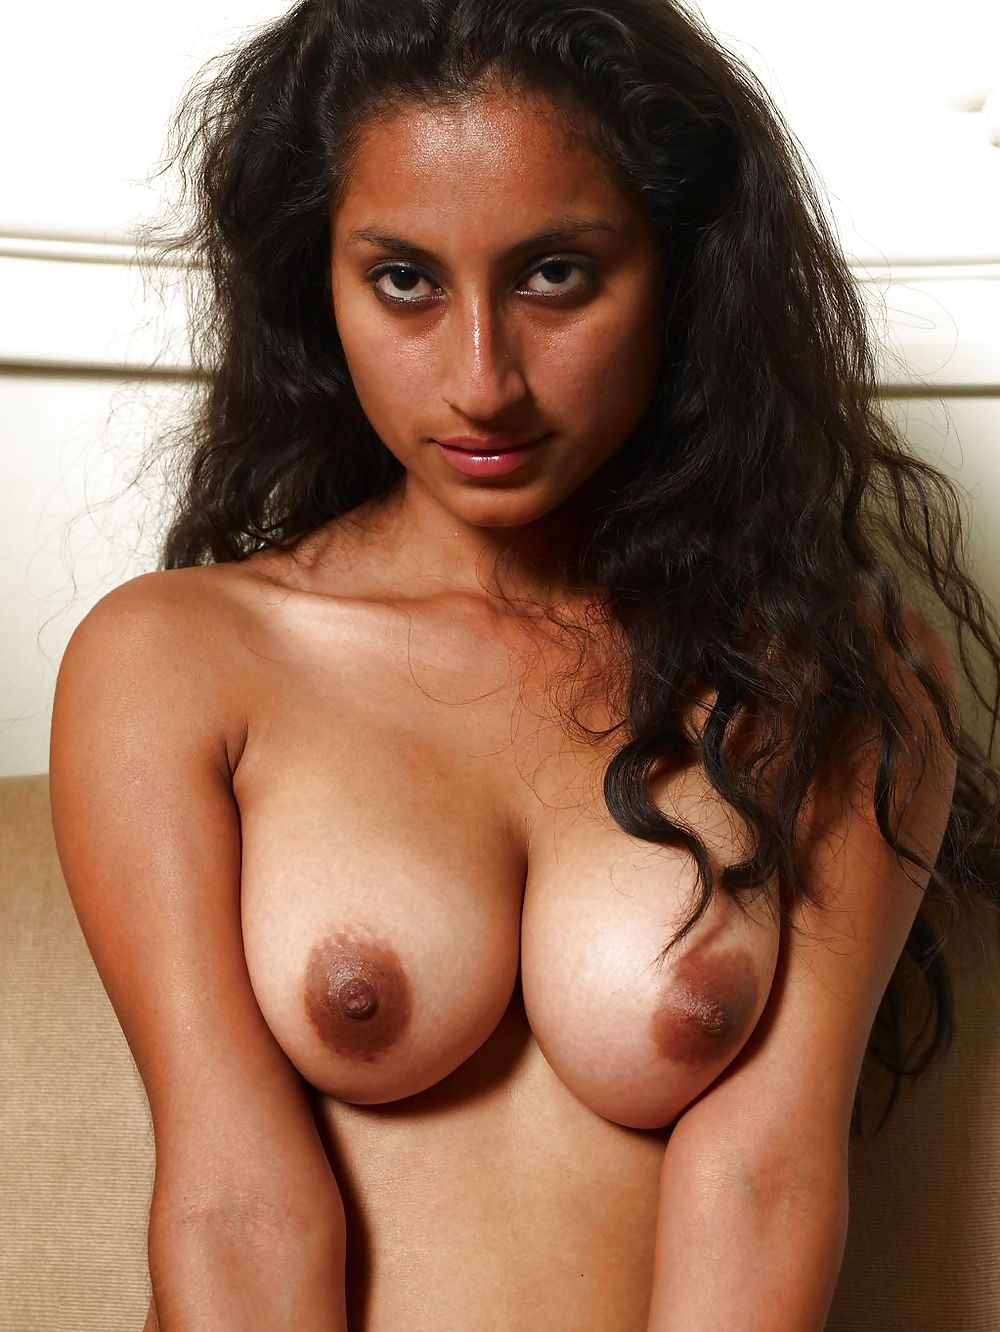 Are certainly Semi nude pics of indian girls